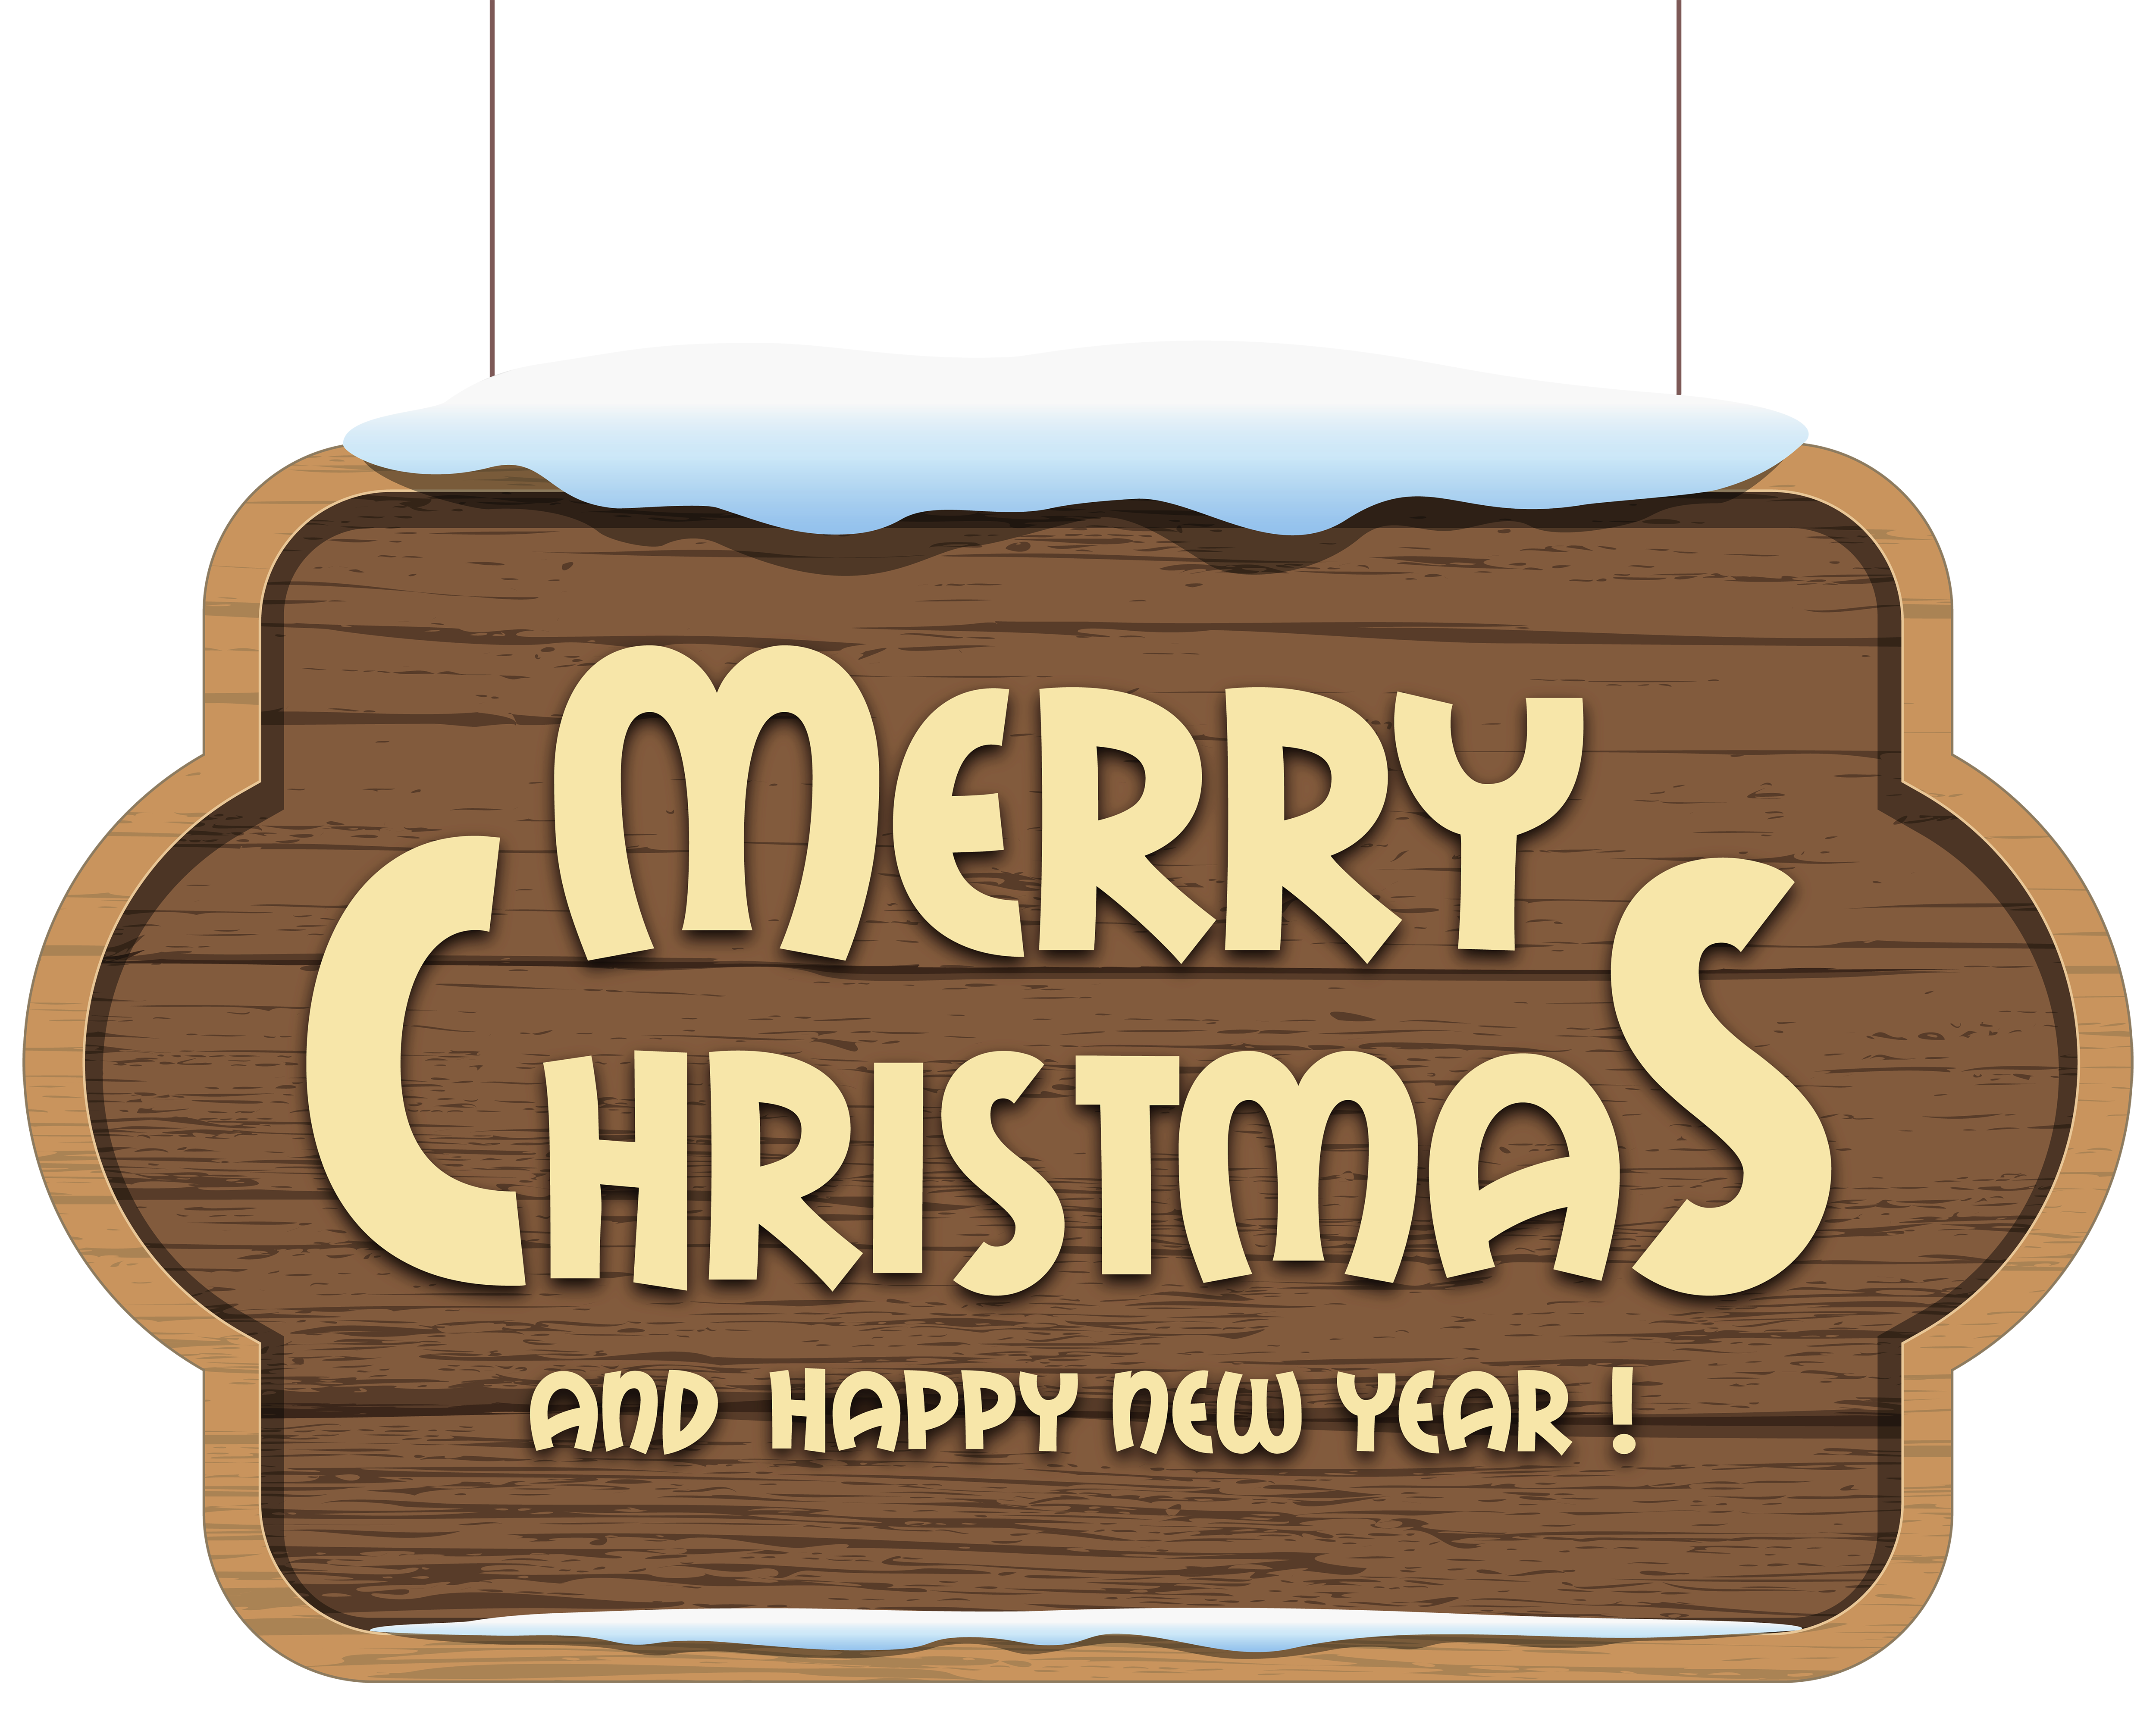 Christmas vacation clipart svg royalty free library Merry Christmas Wooden Sign PNG Clipart Image | Gallery ... svg royalty free library